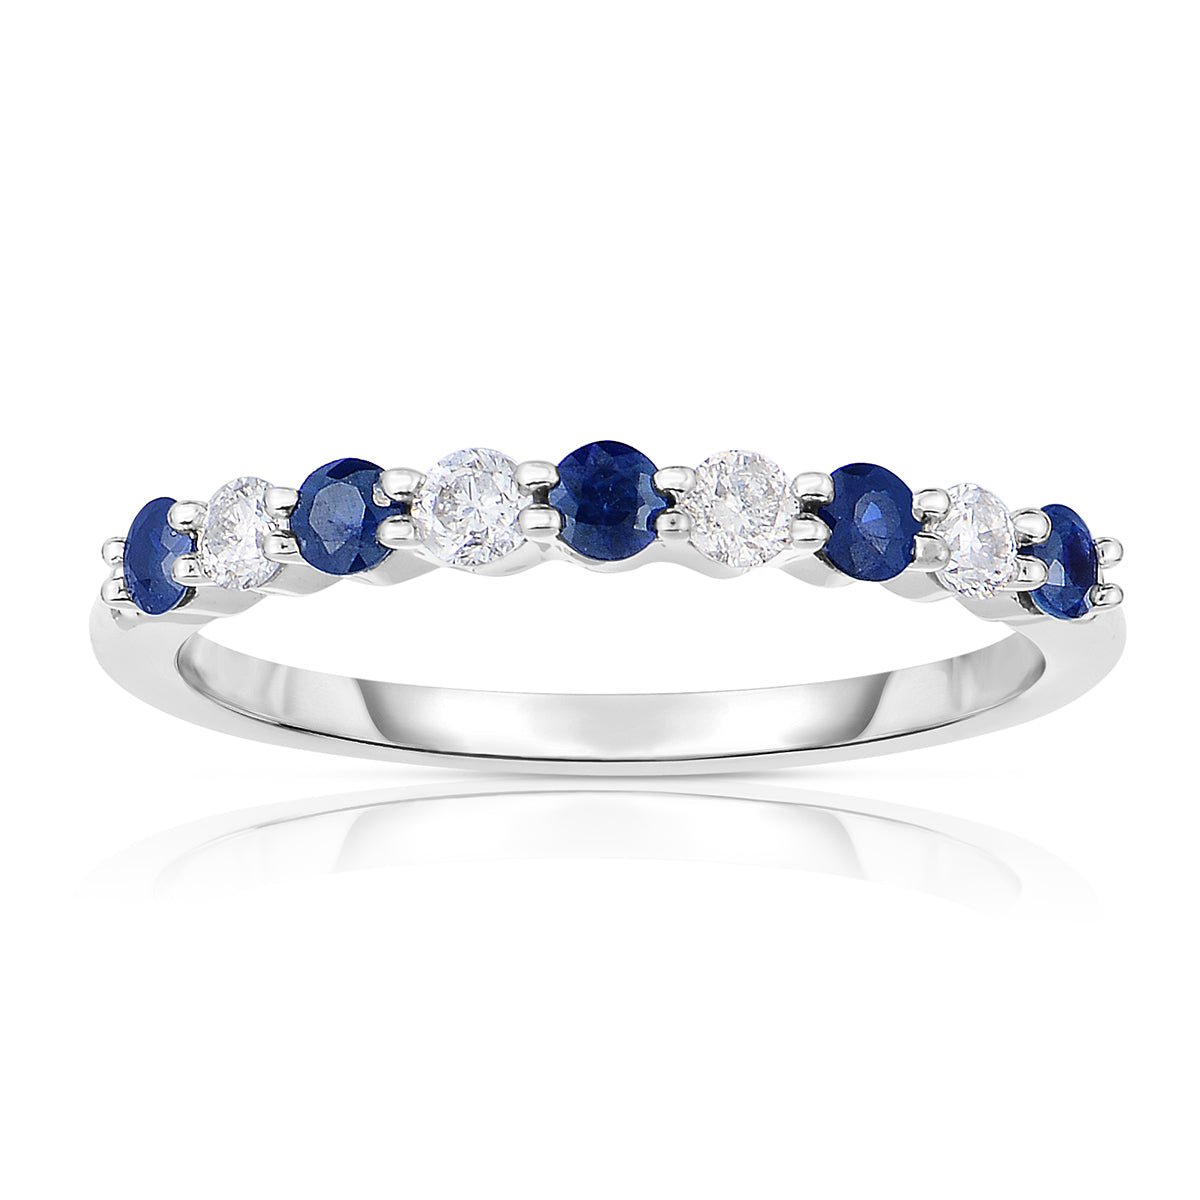 Sabel Collection 14K White Gold Prong Set Round Sapphire and Diamond Ring